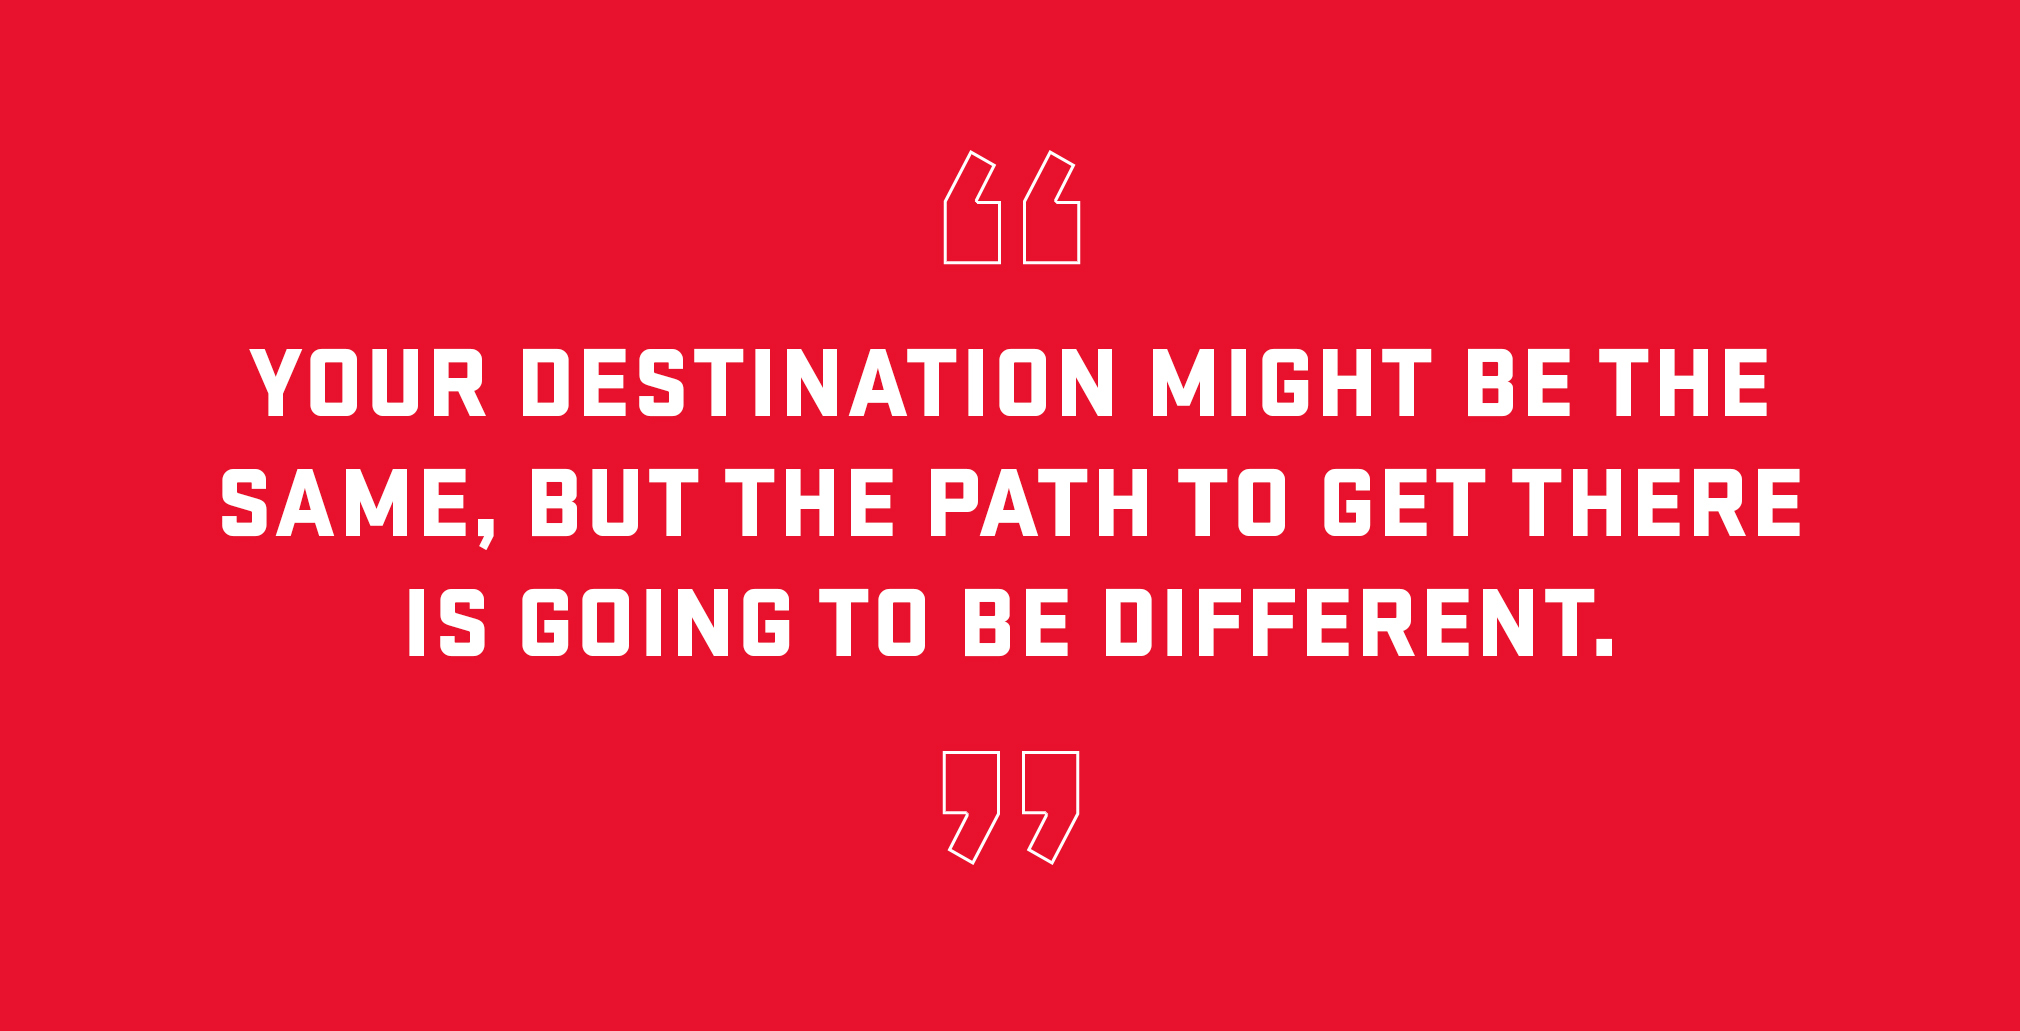 Block quote: Your destination might be the same but the path to get there is going to be different.